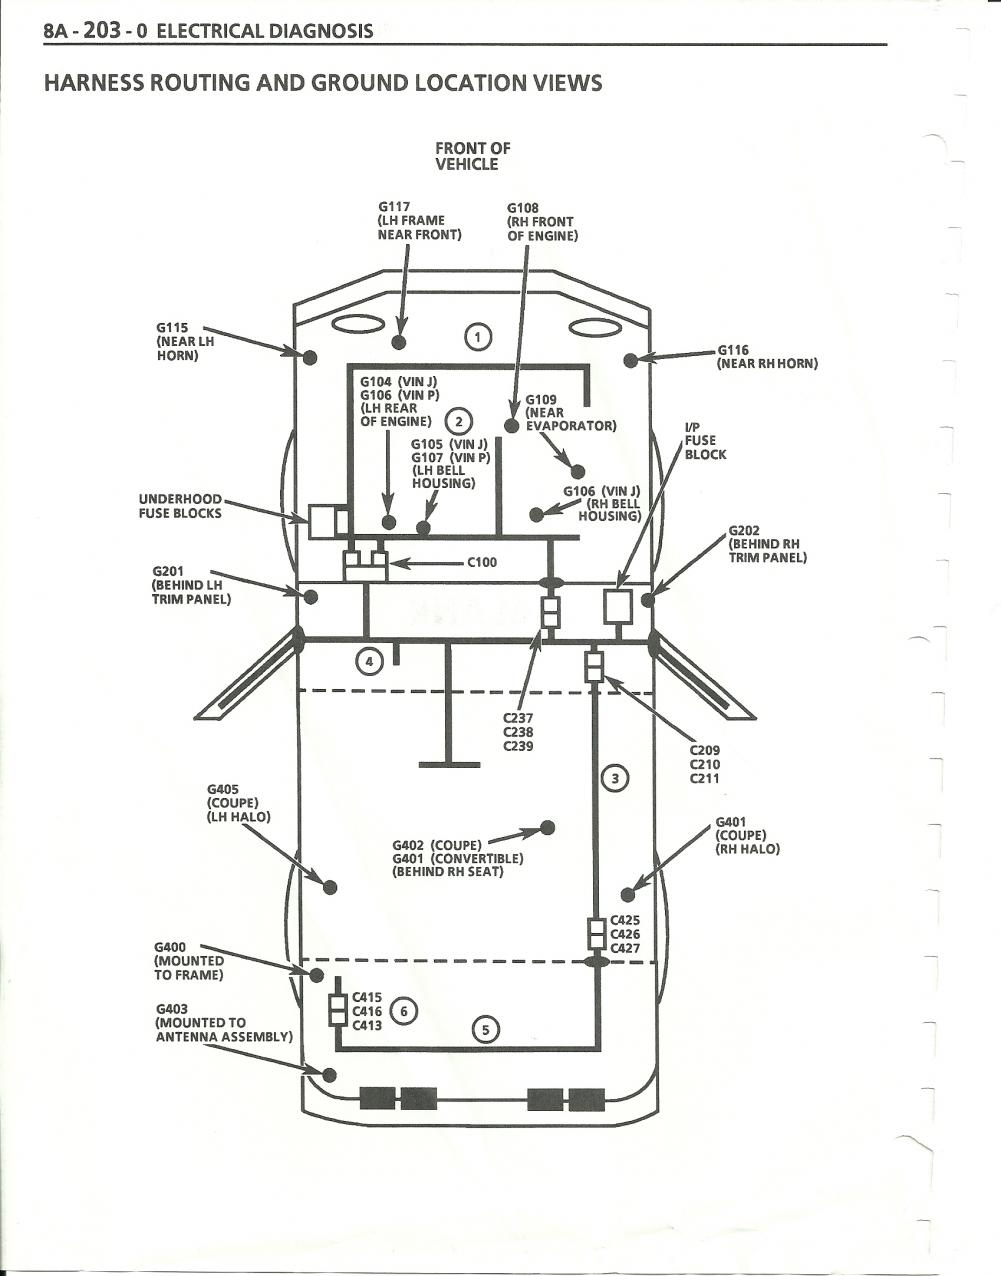 1984 corvette service bulletin rear hatch defogger